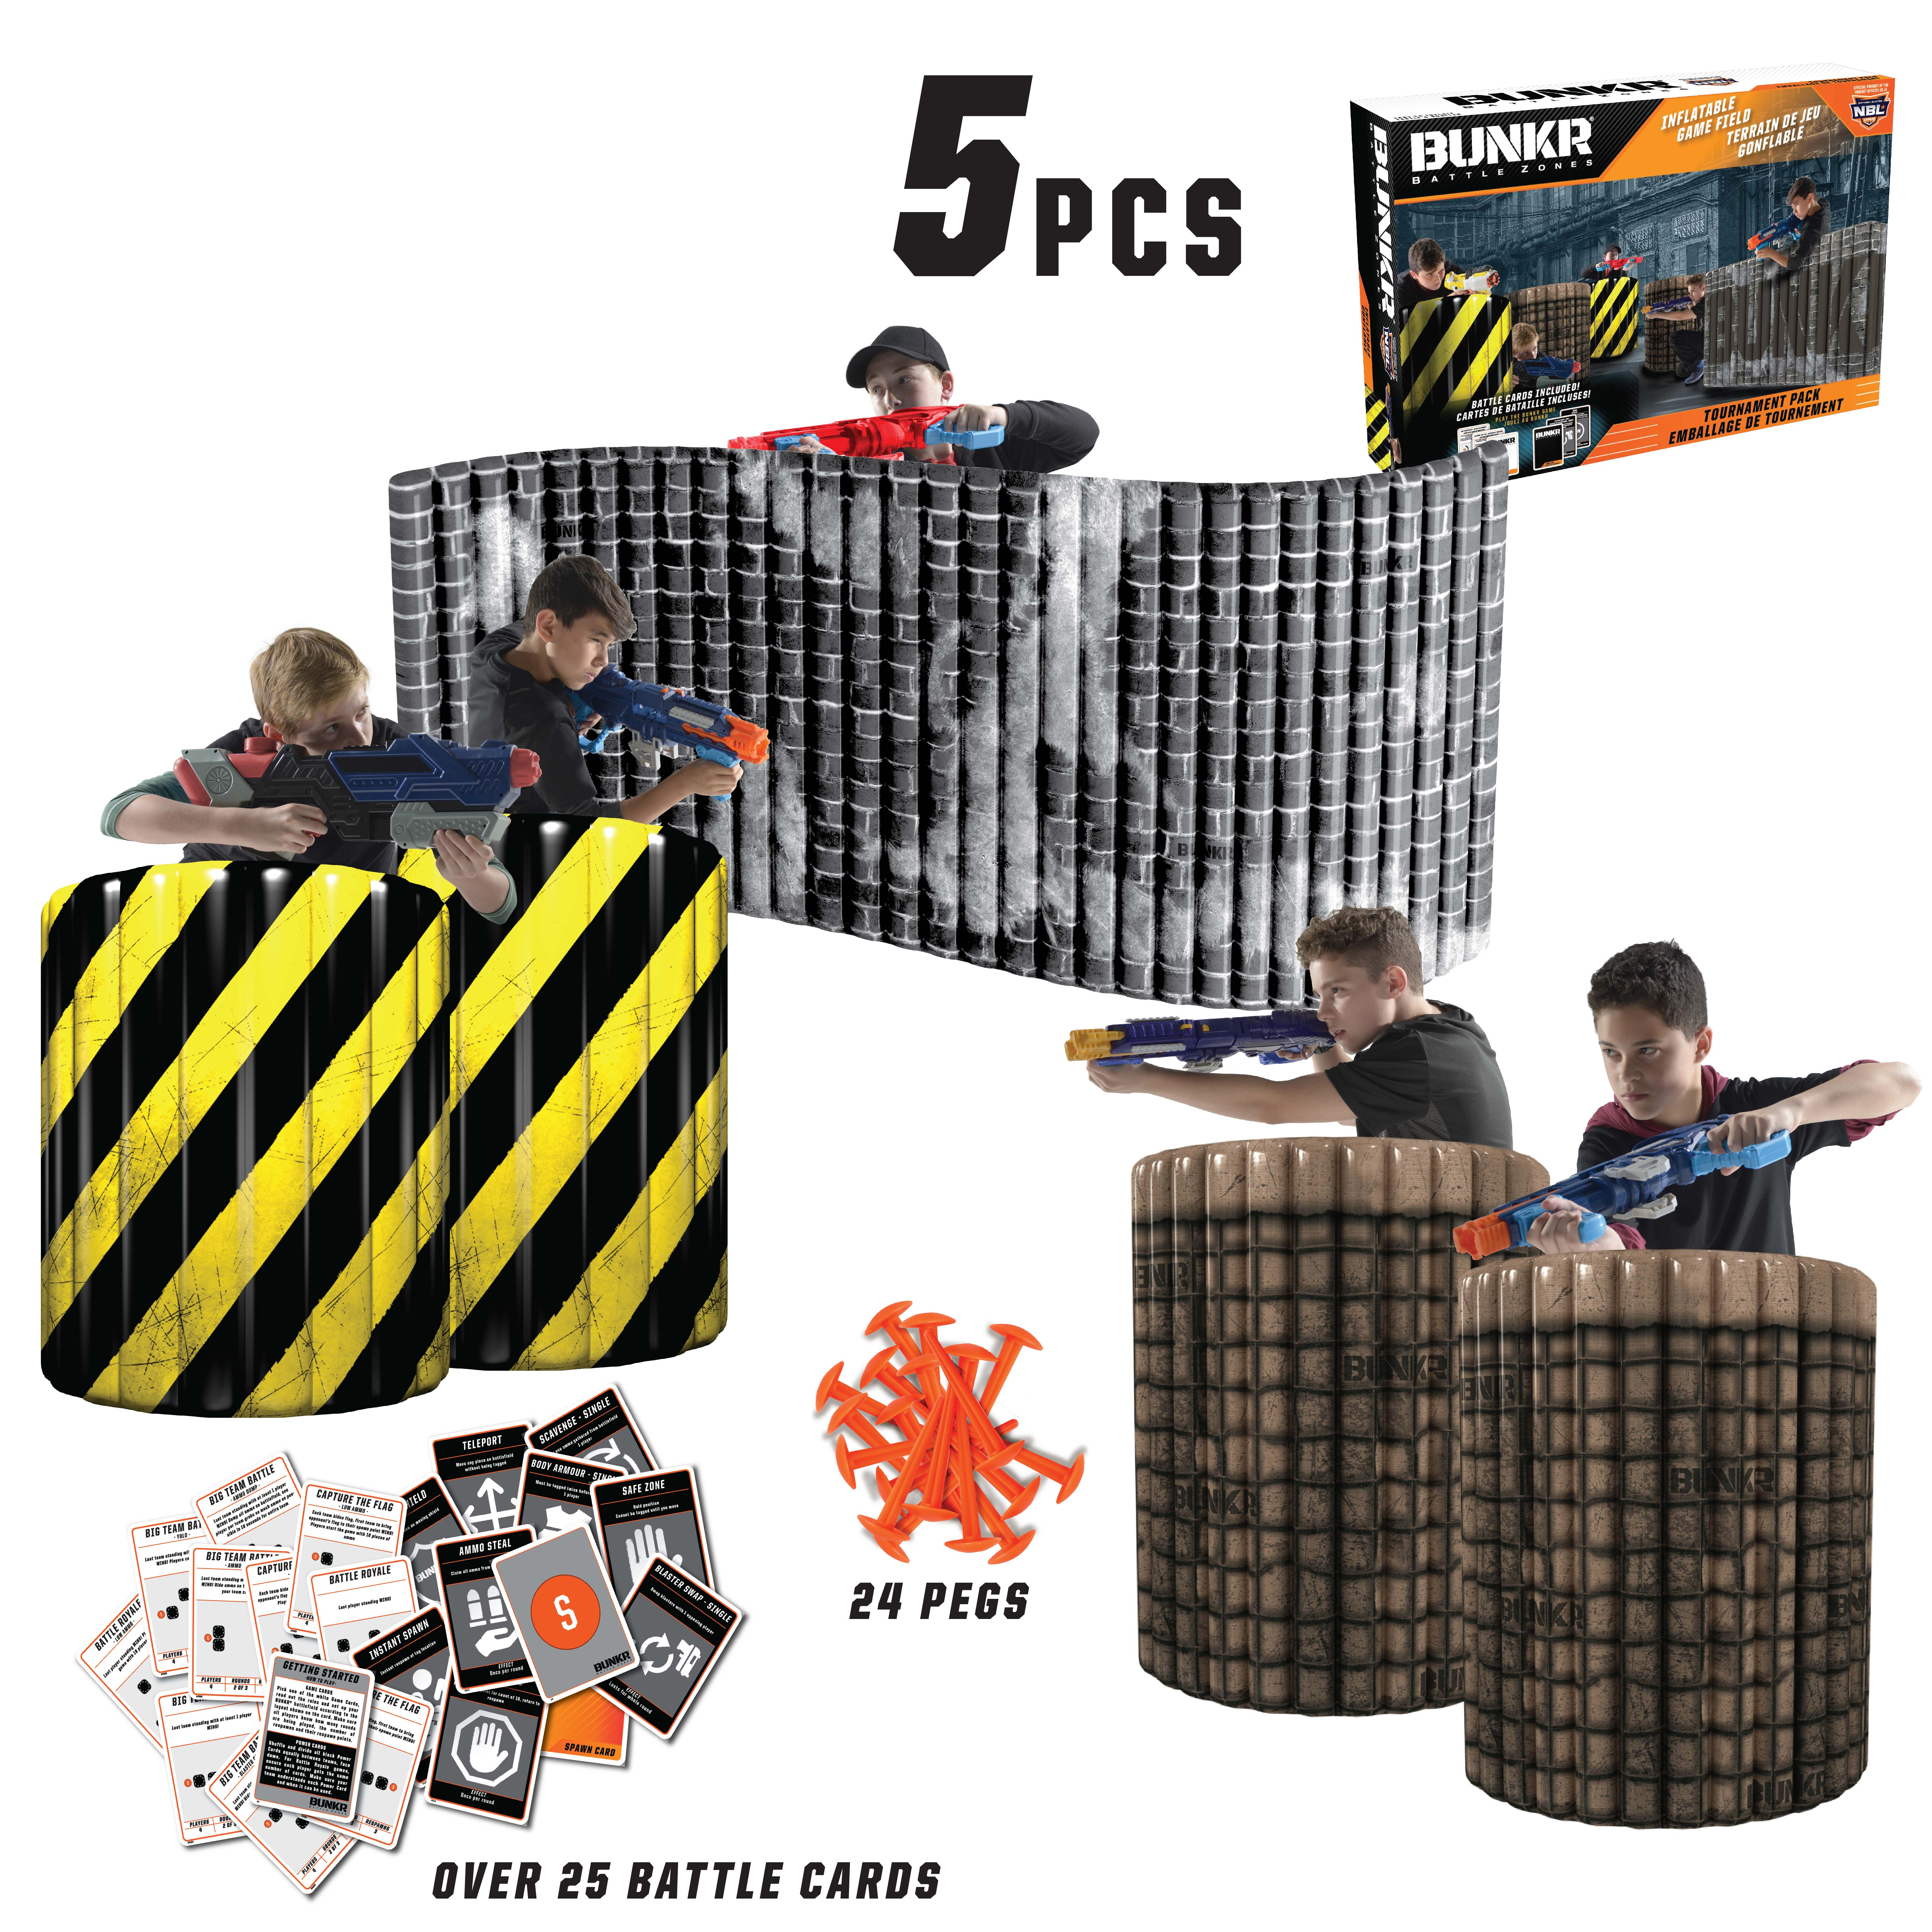 BUNKR Build Your Own Battlezone Inflatable City Zone Tournament 5 Piece Pack. (Compatible with Nerf, Laser X, X shot and Boom co Battles)